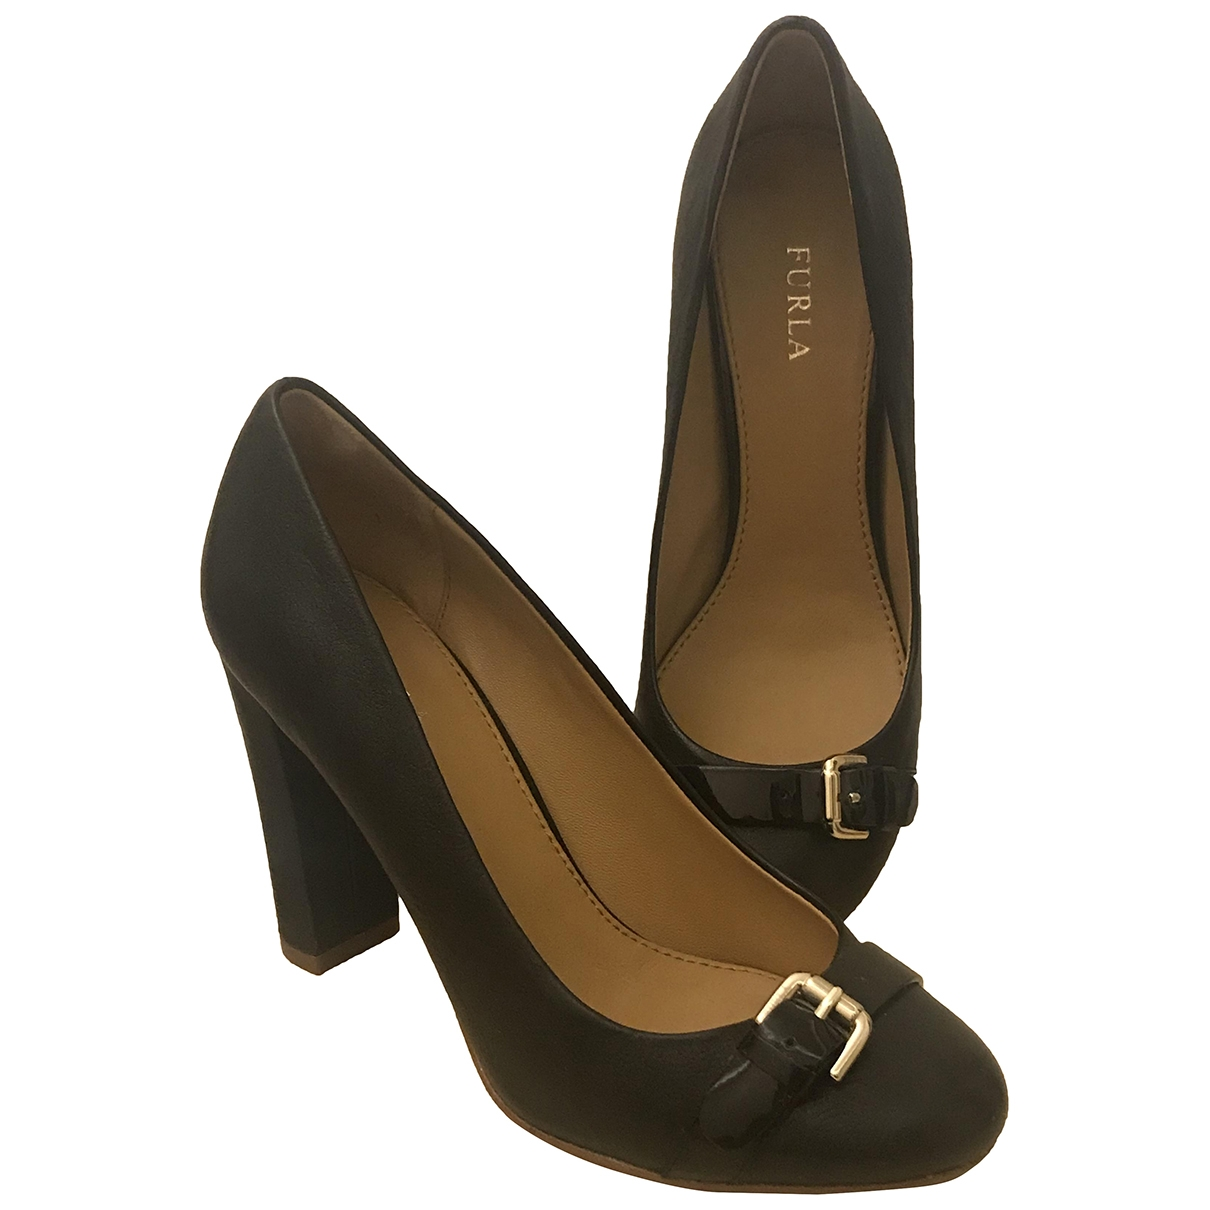 Furla \N Black Leather Heels for Women 36 EU